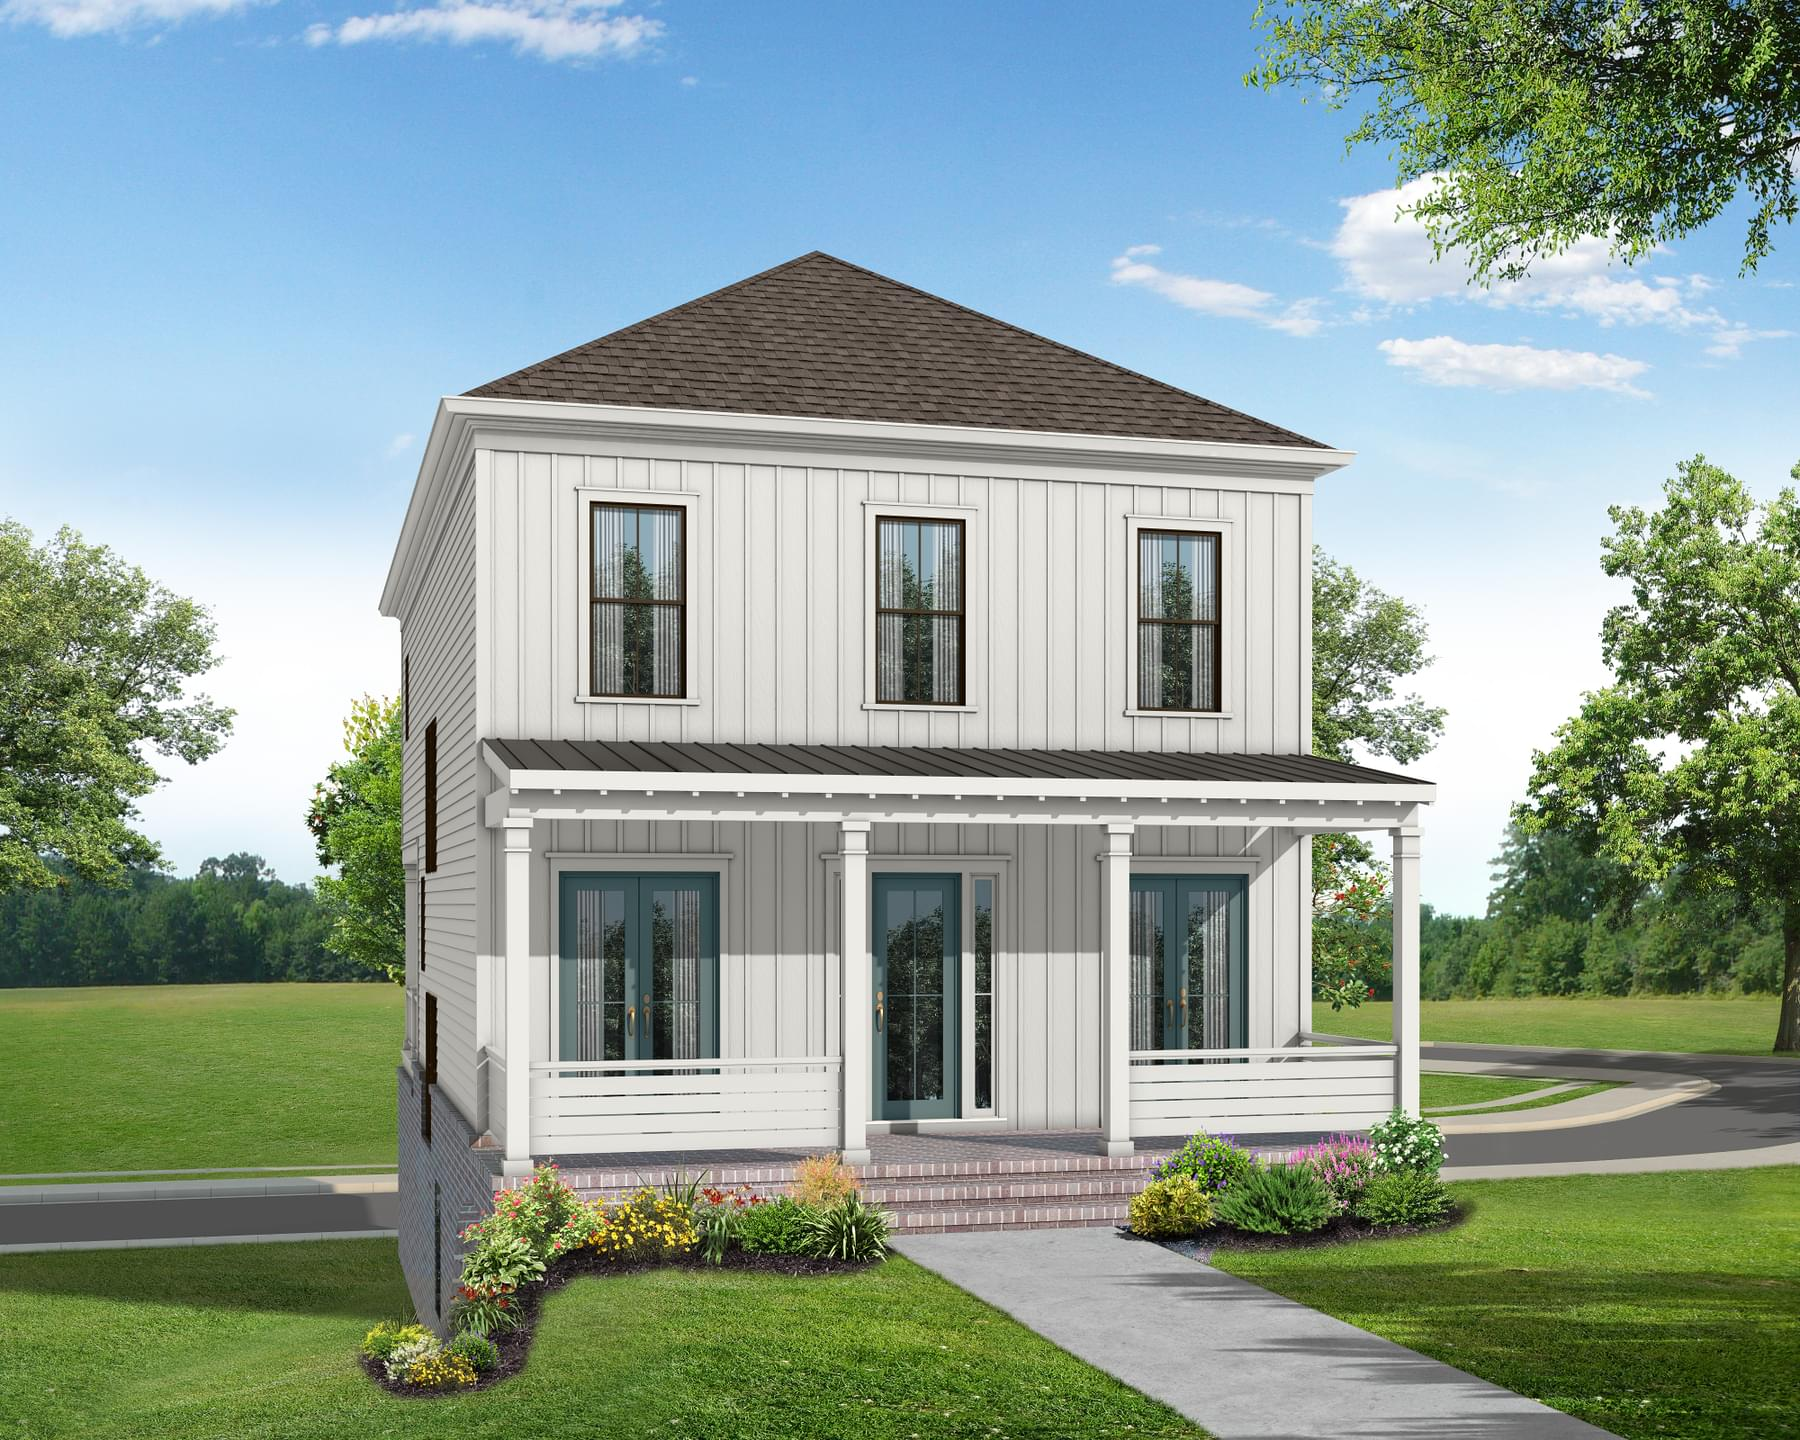 Elevation F. The Manchester Home with 3 Bedrooms